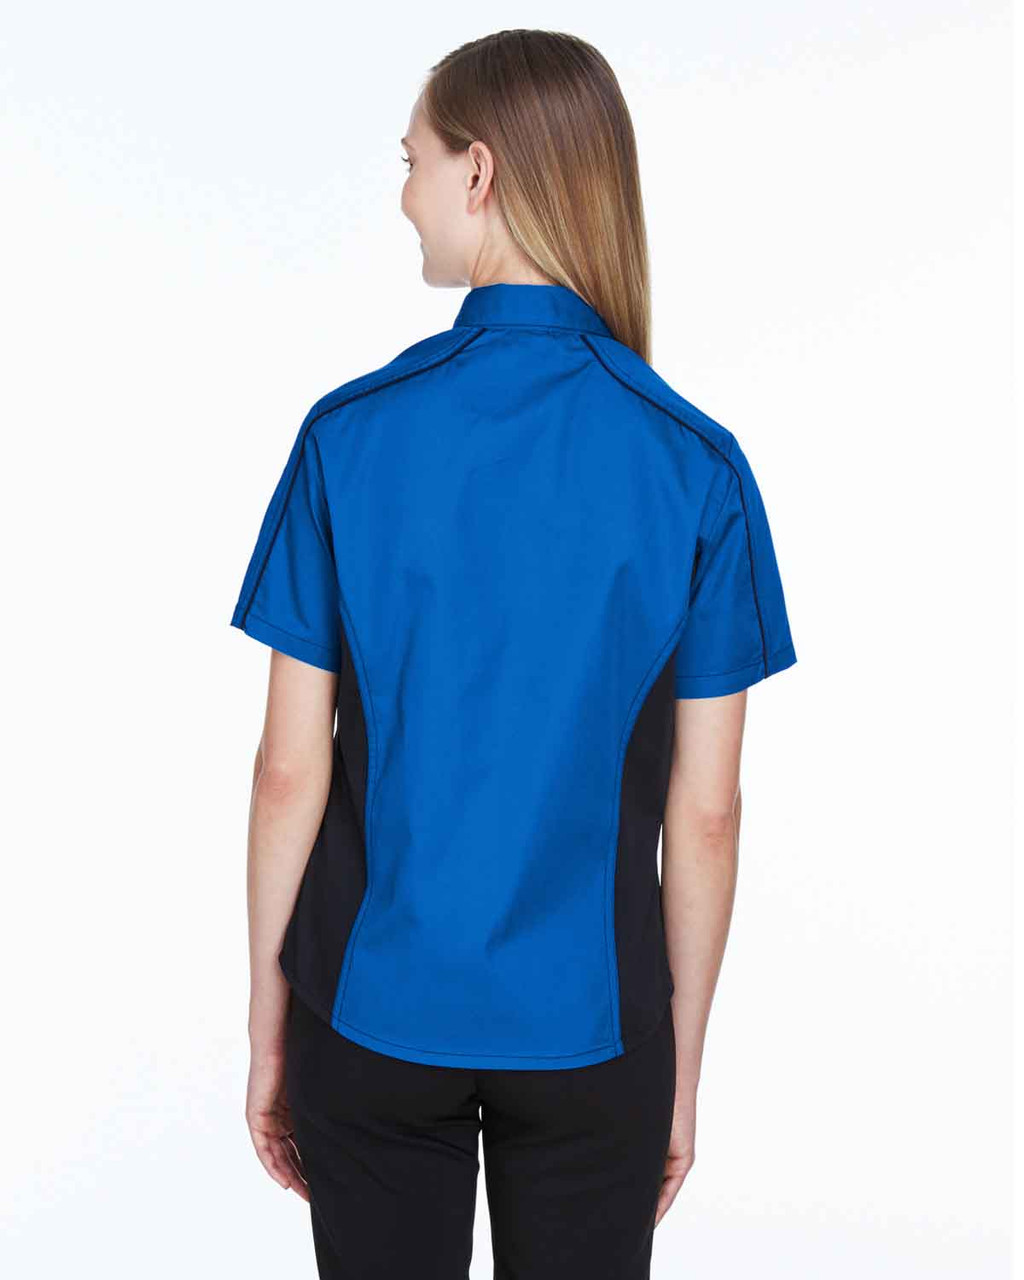 True Royal/Black - Back, 77042 North End Fuse Colourblock Twill Shirt | BlankClothing.ca